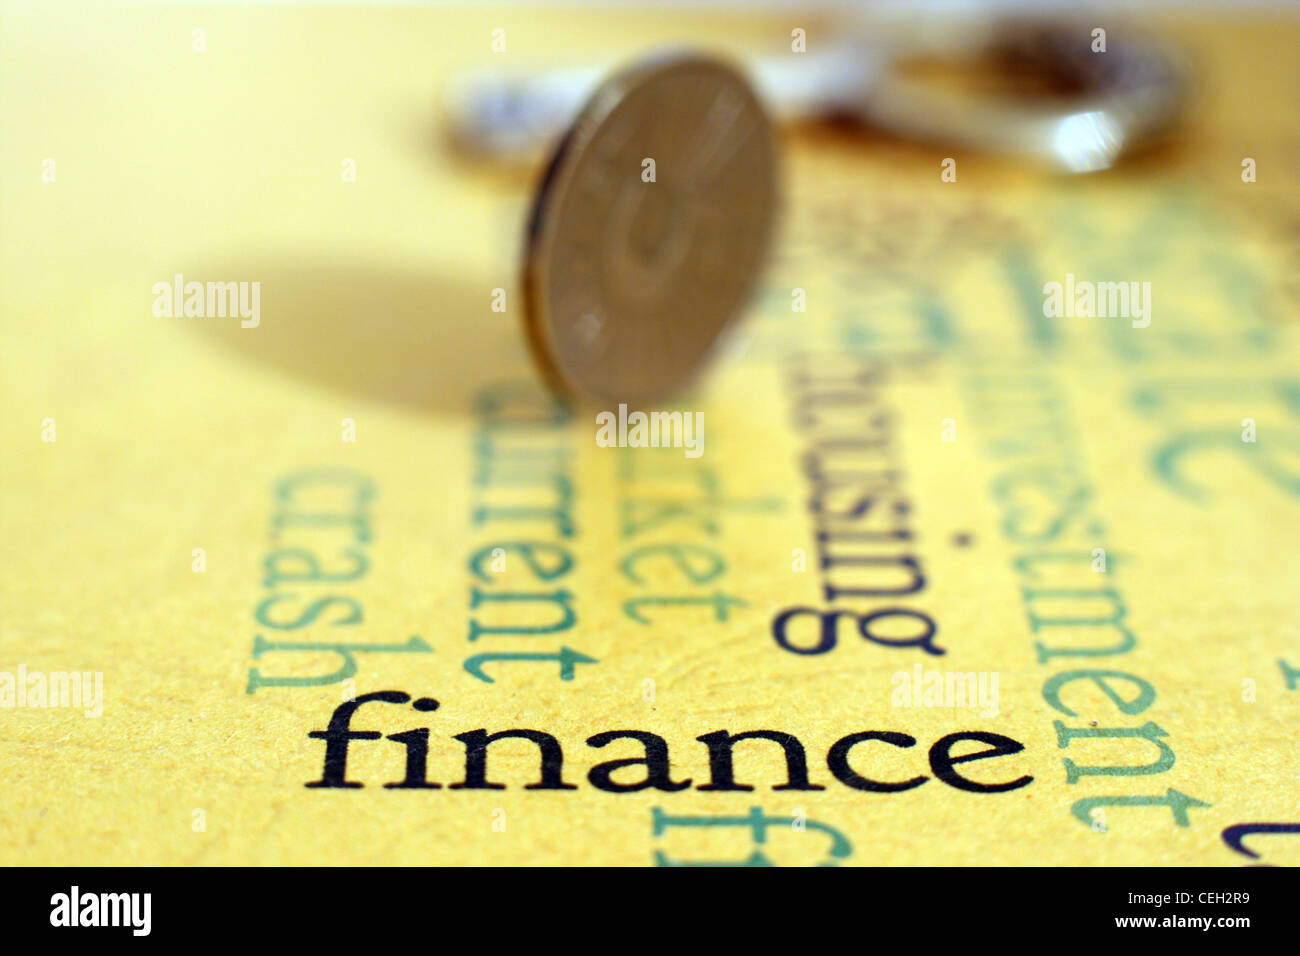 FInance concept - Stock Image